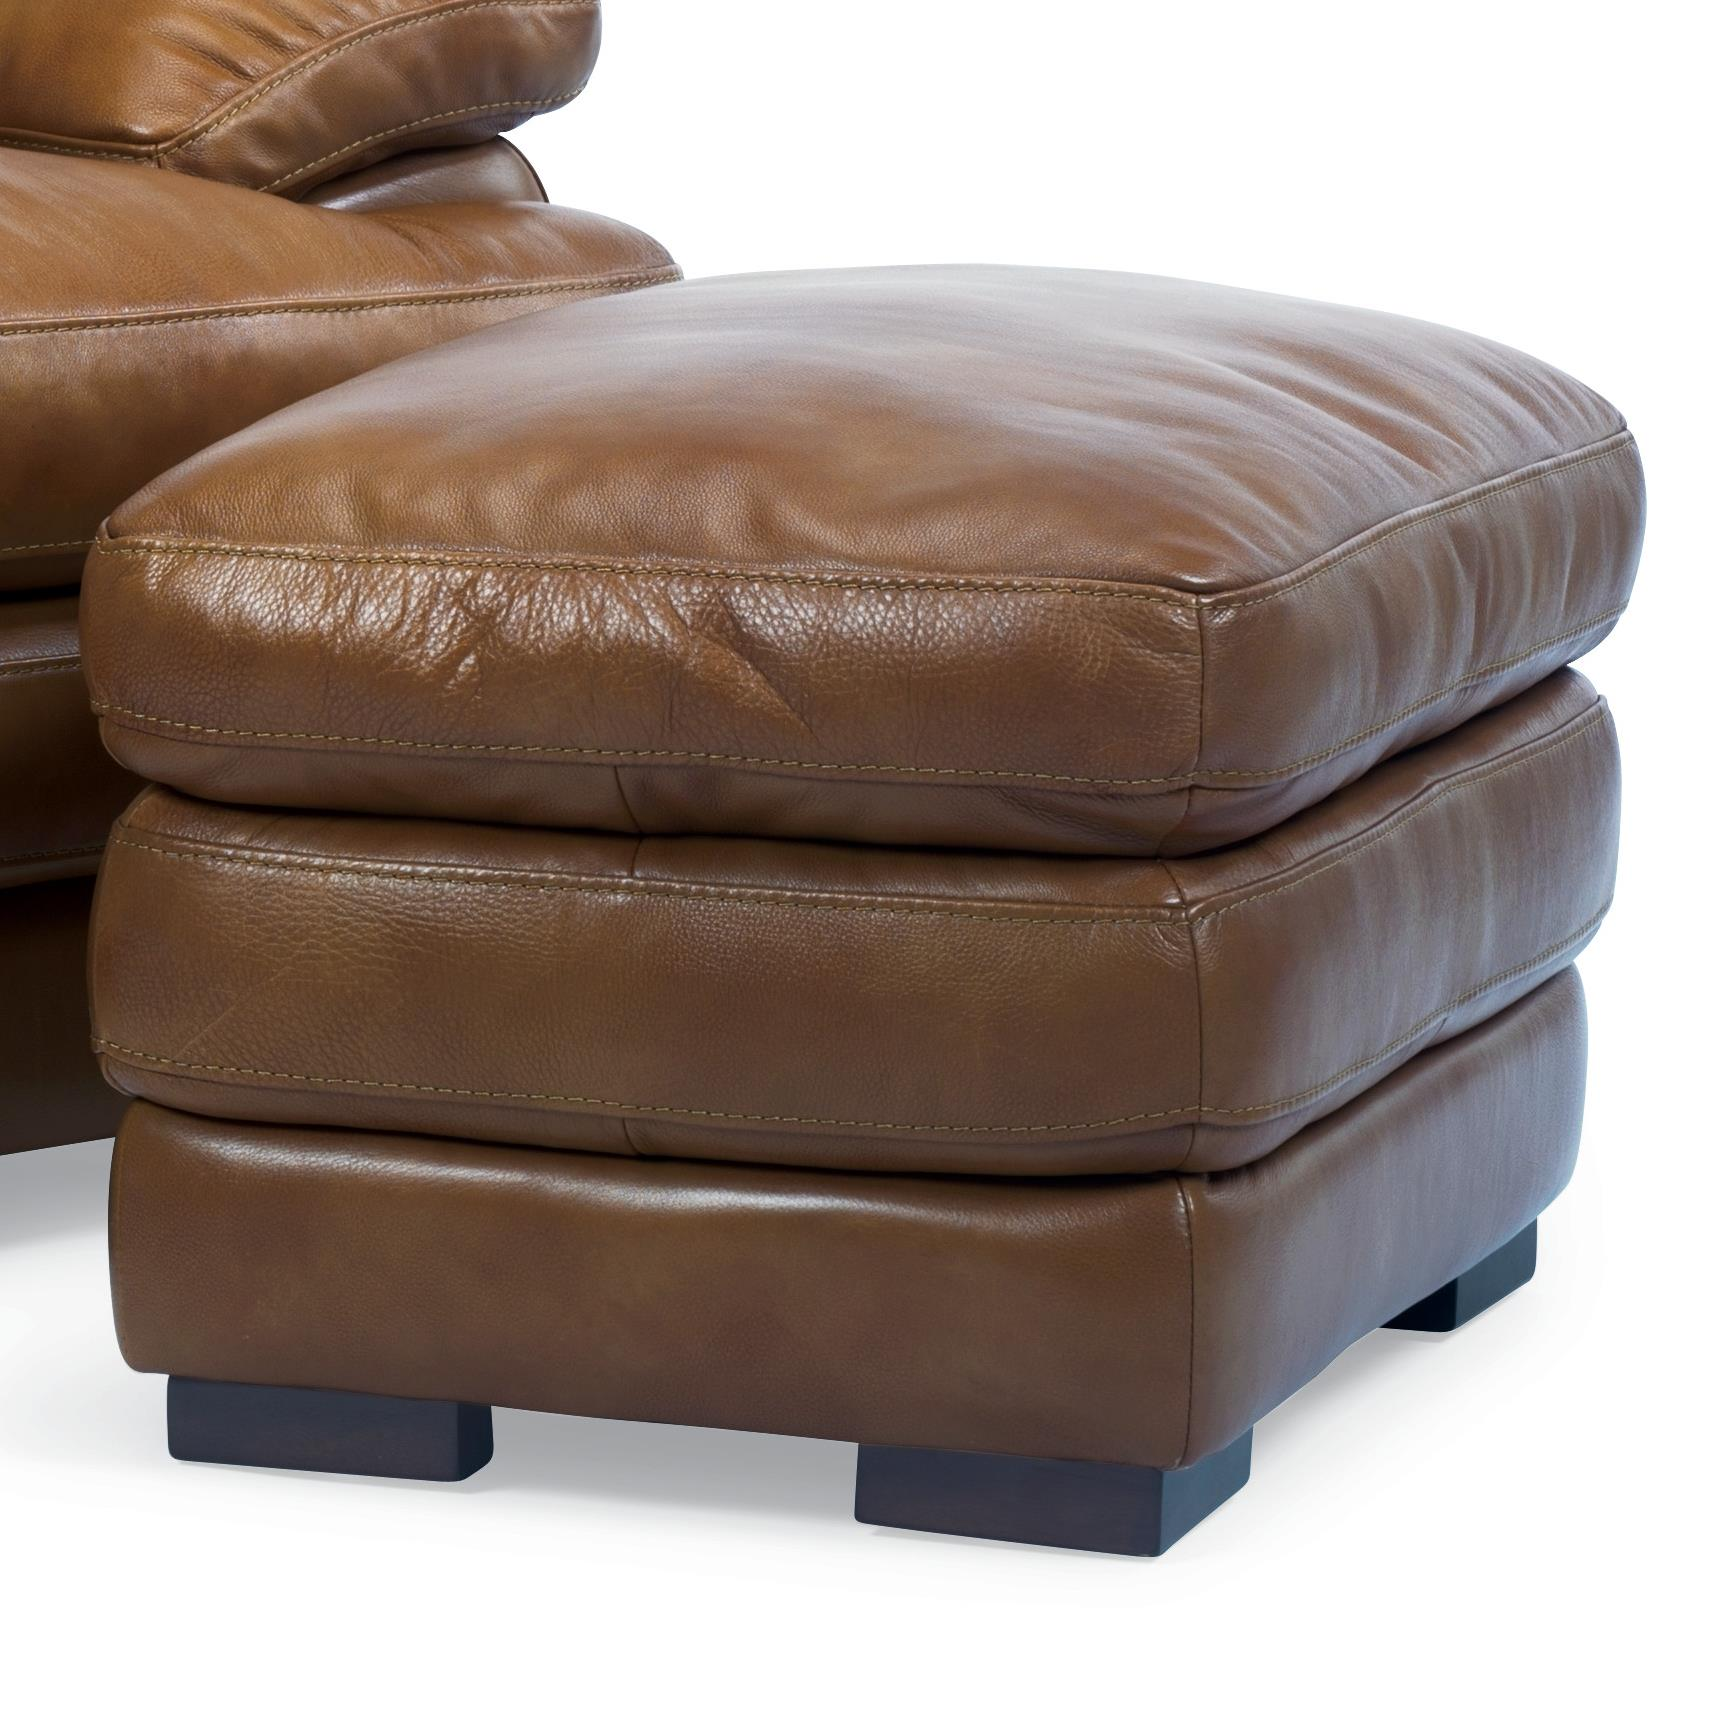 Double Chair With Ottoman Flexsteel Latitudes Dylan Double Top Leather Ottoman